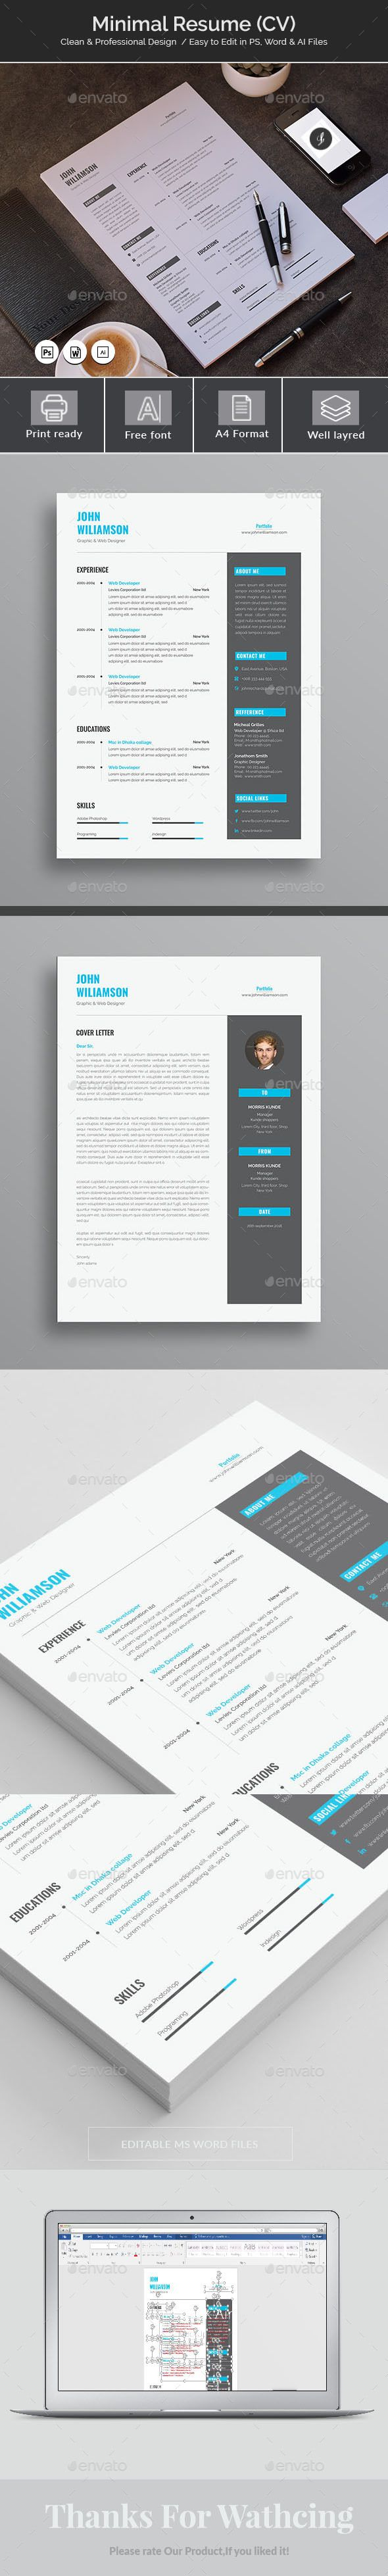 Resume curriculum vitae resume template u2022 Download